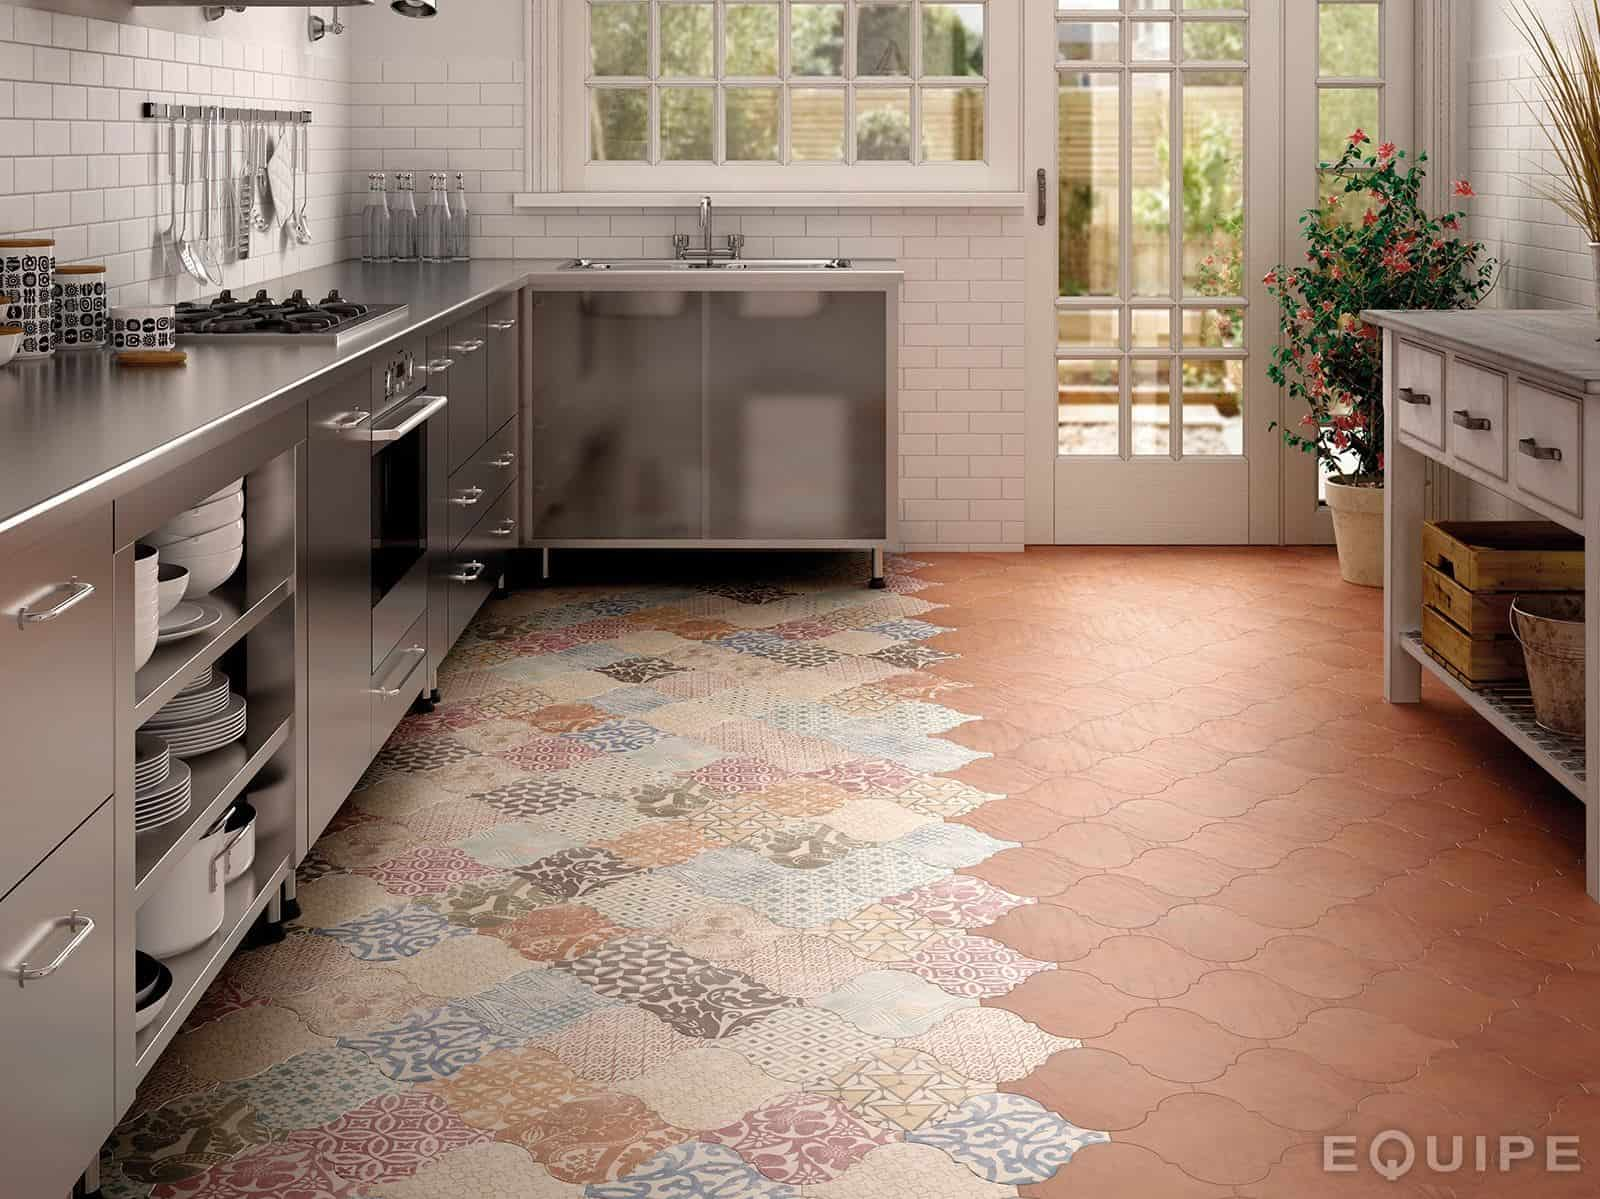 kitchen tiles pattern 21 arabesque tile ideas for floor wall and backsplash 3347